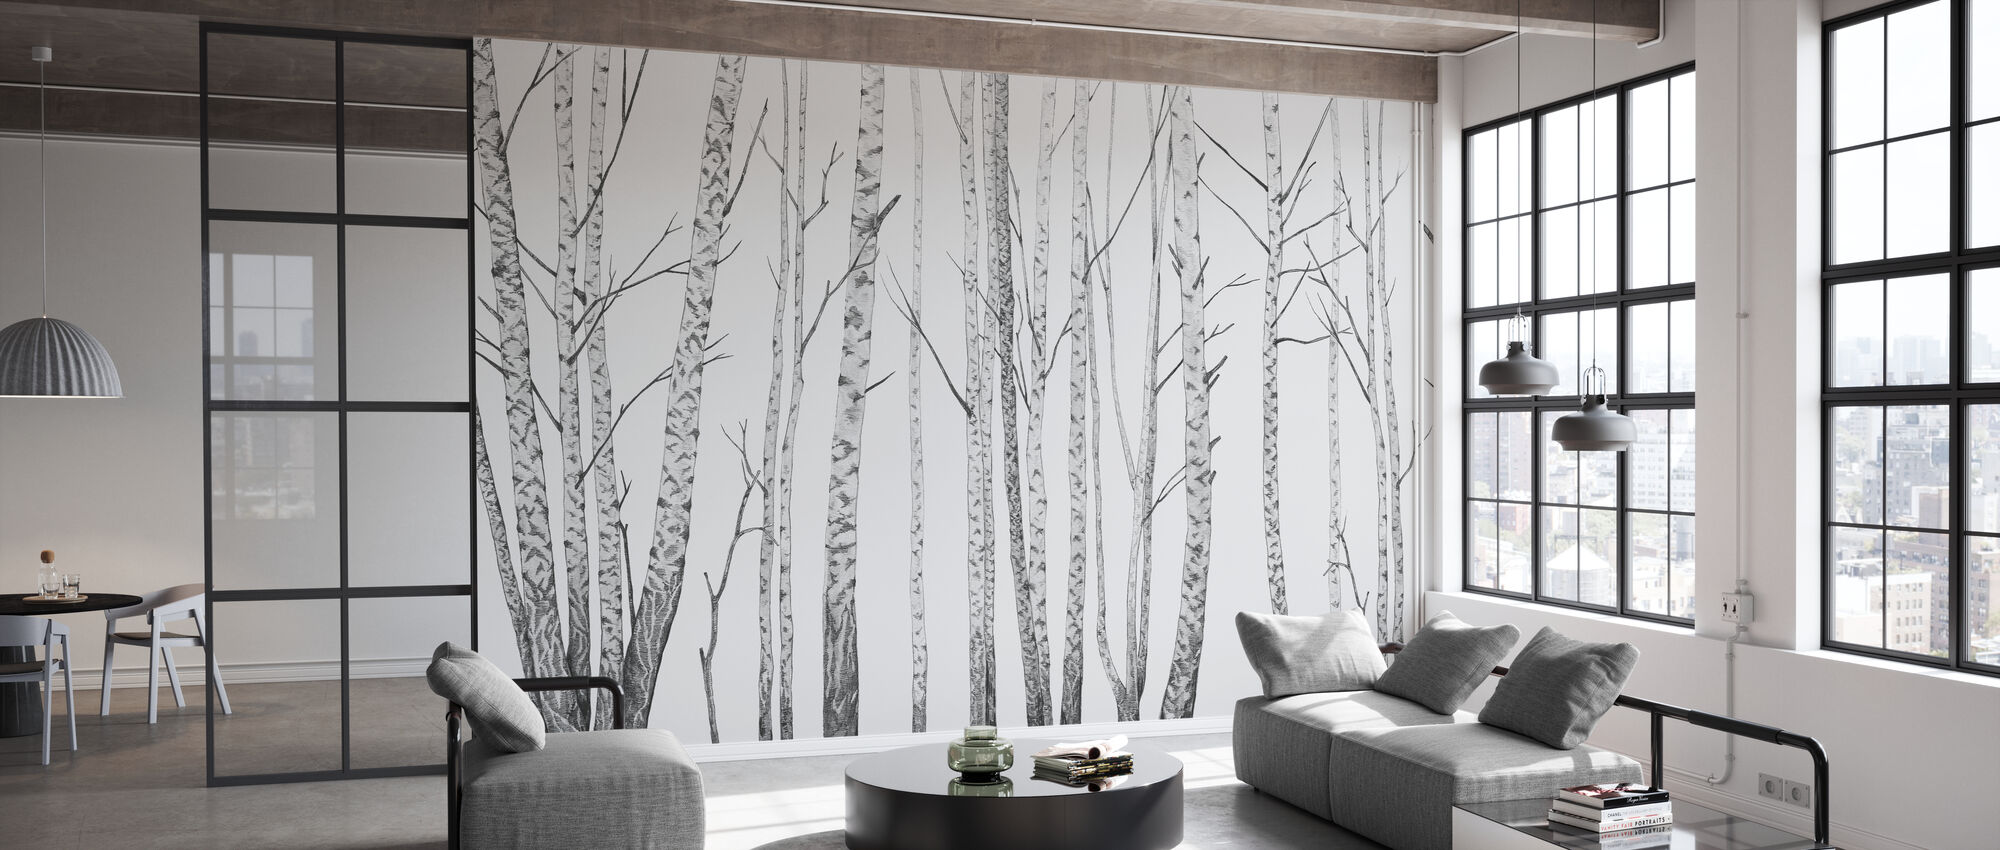 Birch Stems - bw - Wallpaper - Office